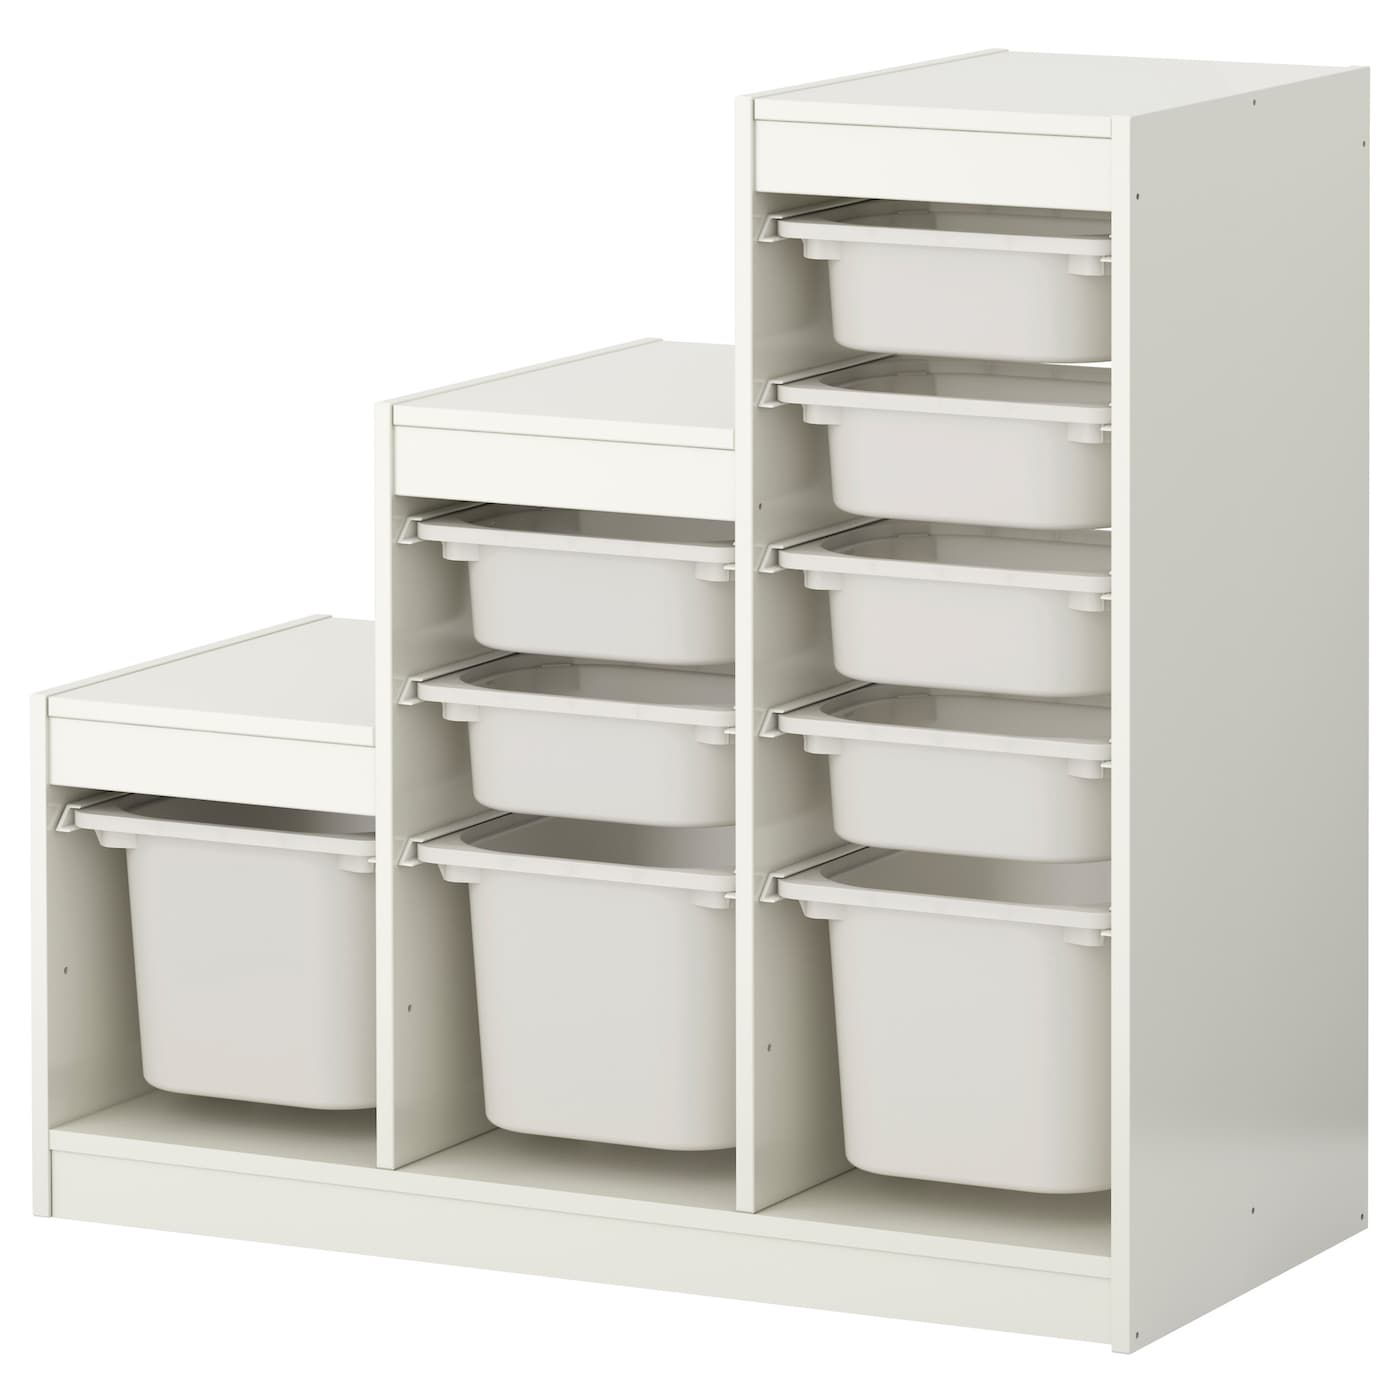 trofast storage combination with boxes white white 99x44x94 cm ikea. Black Bedroom Furniture Sets. Home Design Ideas